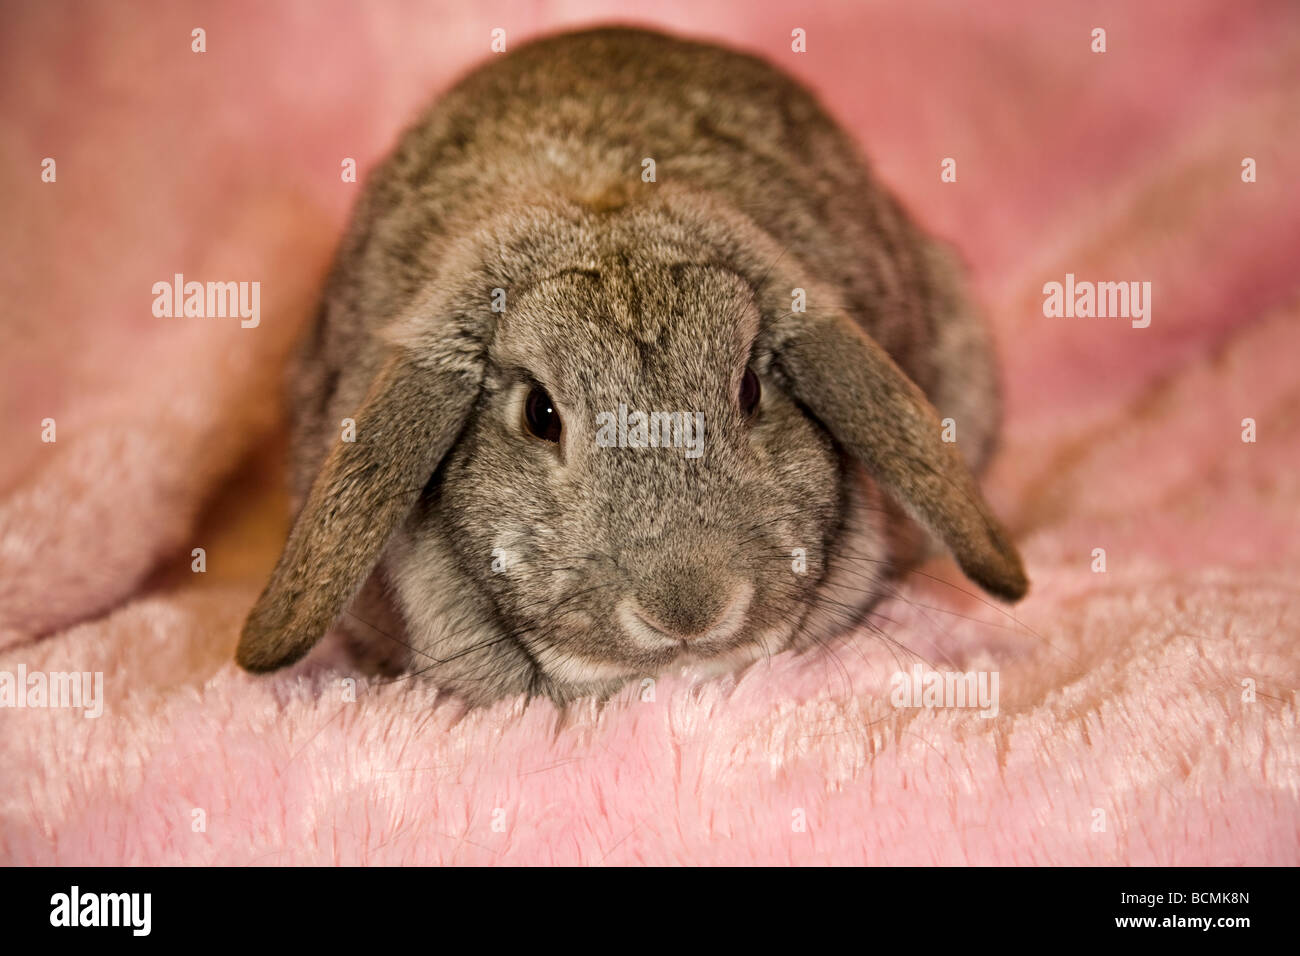 Portrait of a lop eared rabbit - Stock Image